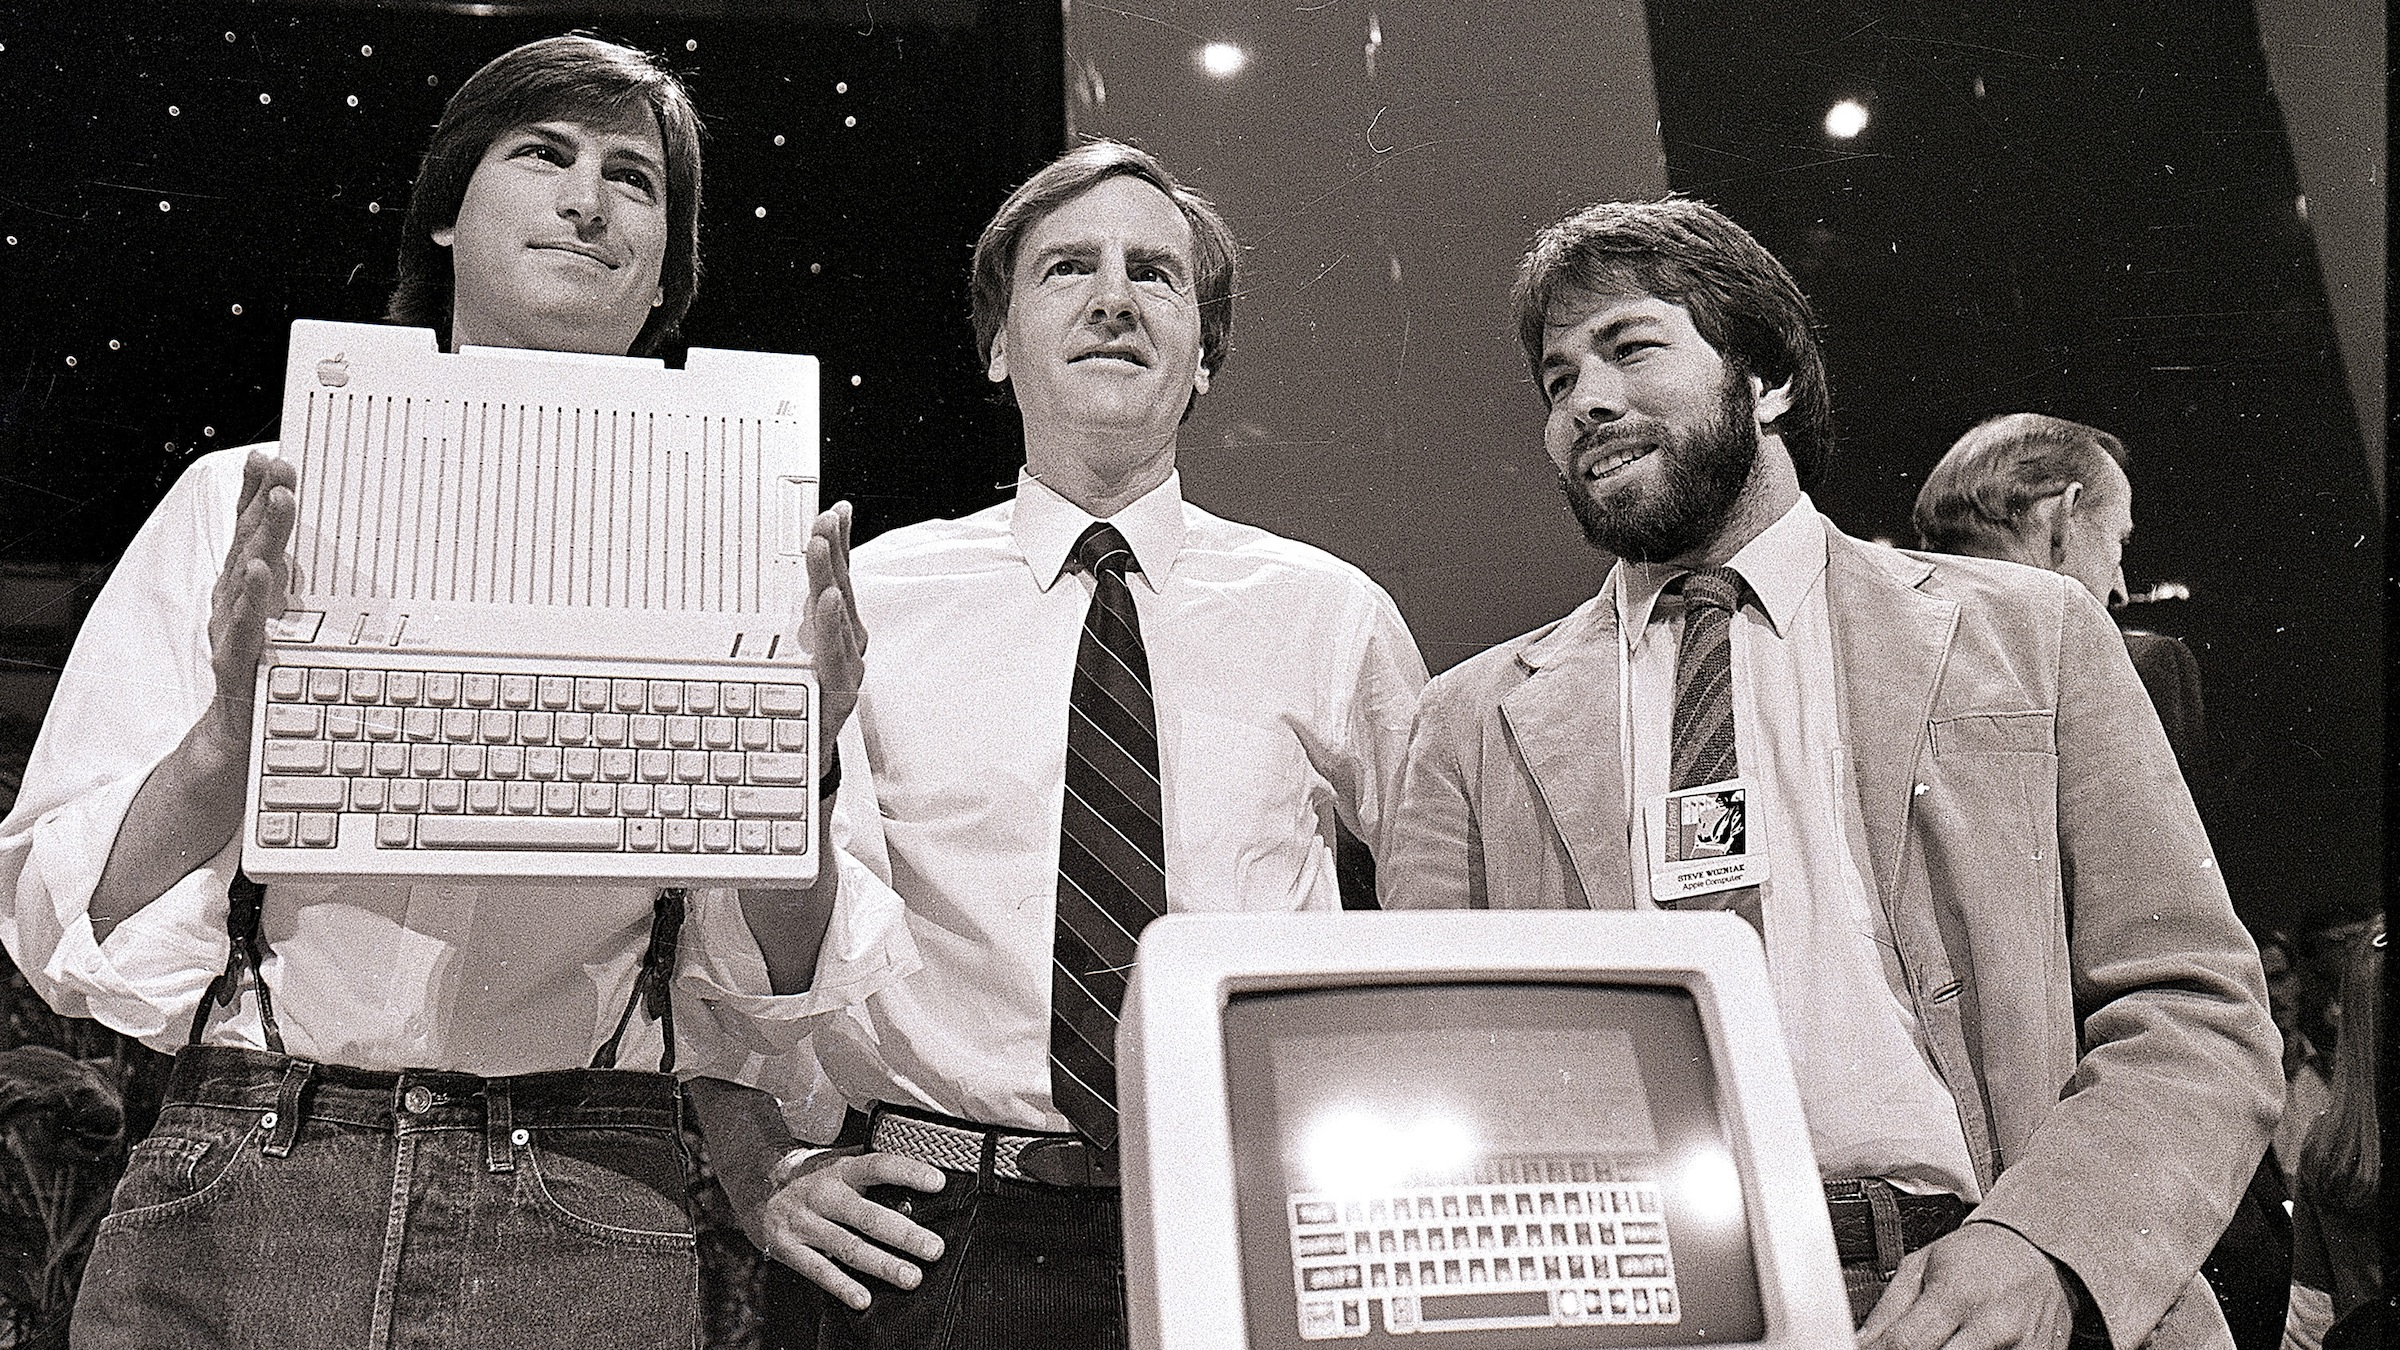 FILE - In this April 24, 1984 file photo, Steve Jobs, left, chairman of Apple Computers, John Sculley, center, then president and CEO, and Steve Wozniak, co-founder of Apple, unveil the new Apple IIc computer in San Francisco. Apple Inc. on Wednesday, Aug. 24, 2011 said Jobs is resigning as CEO, effective immediately. He will be replaced by Tim Cook, who was the company's chief operating officer. It said Jobs has been elected as Apple's chairman.  (AP Photo/Sal Veder, File)